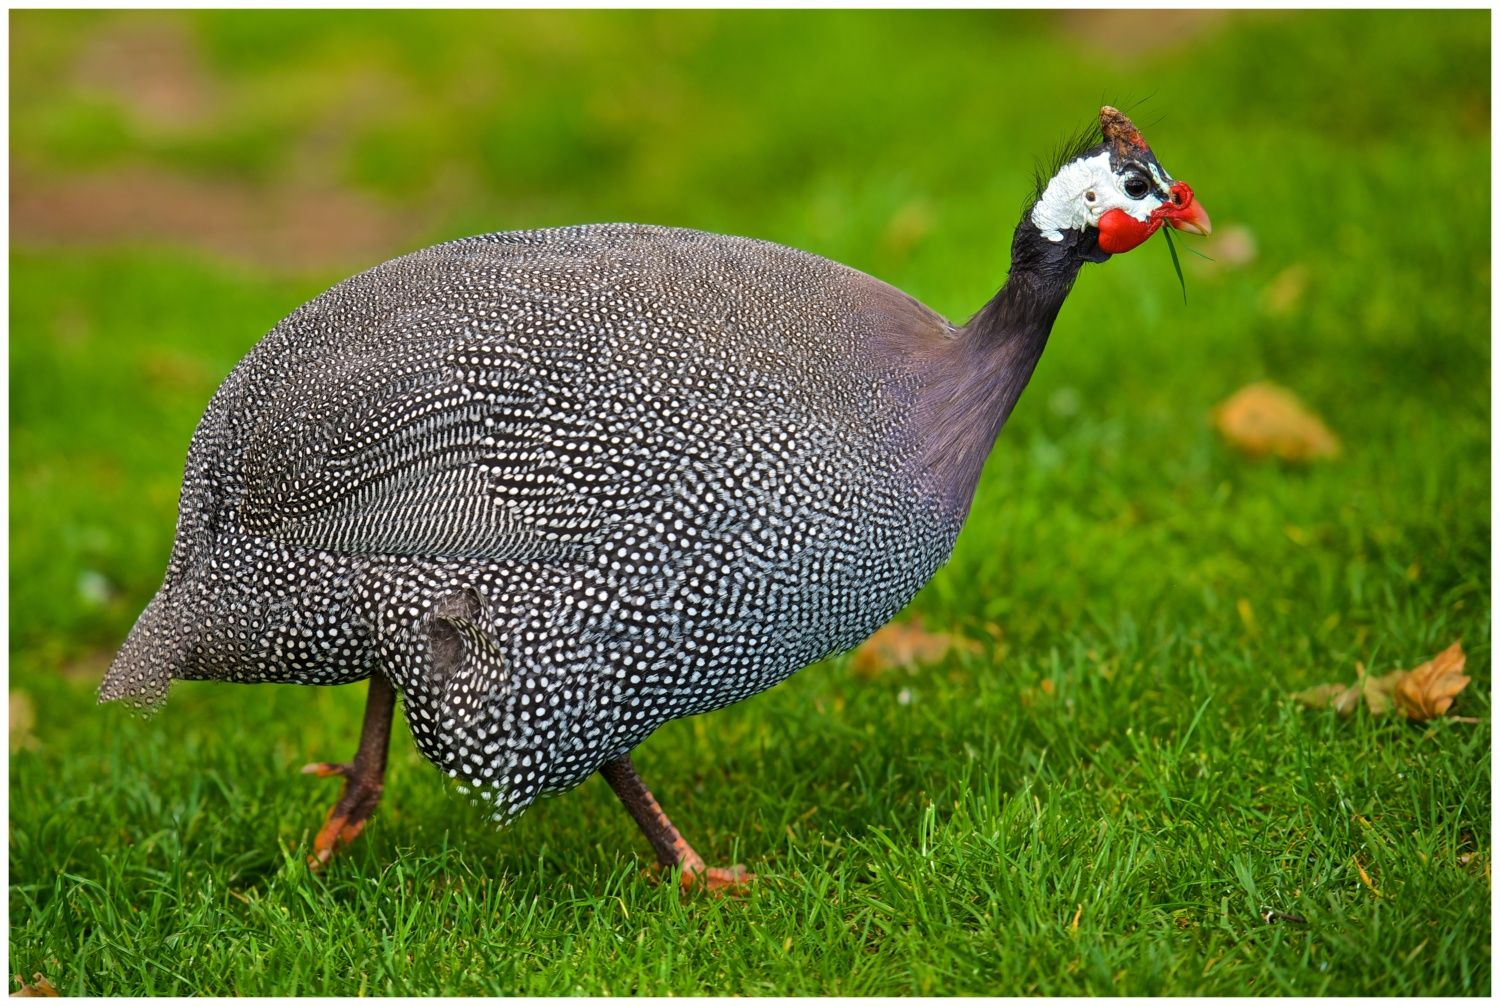 The Helmeted Guinea Fowl Of Africa Vs Of U S